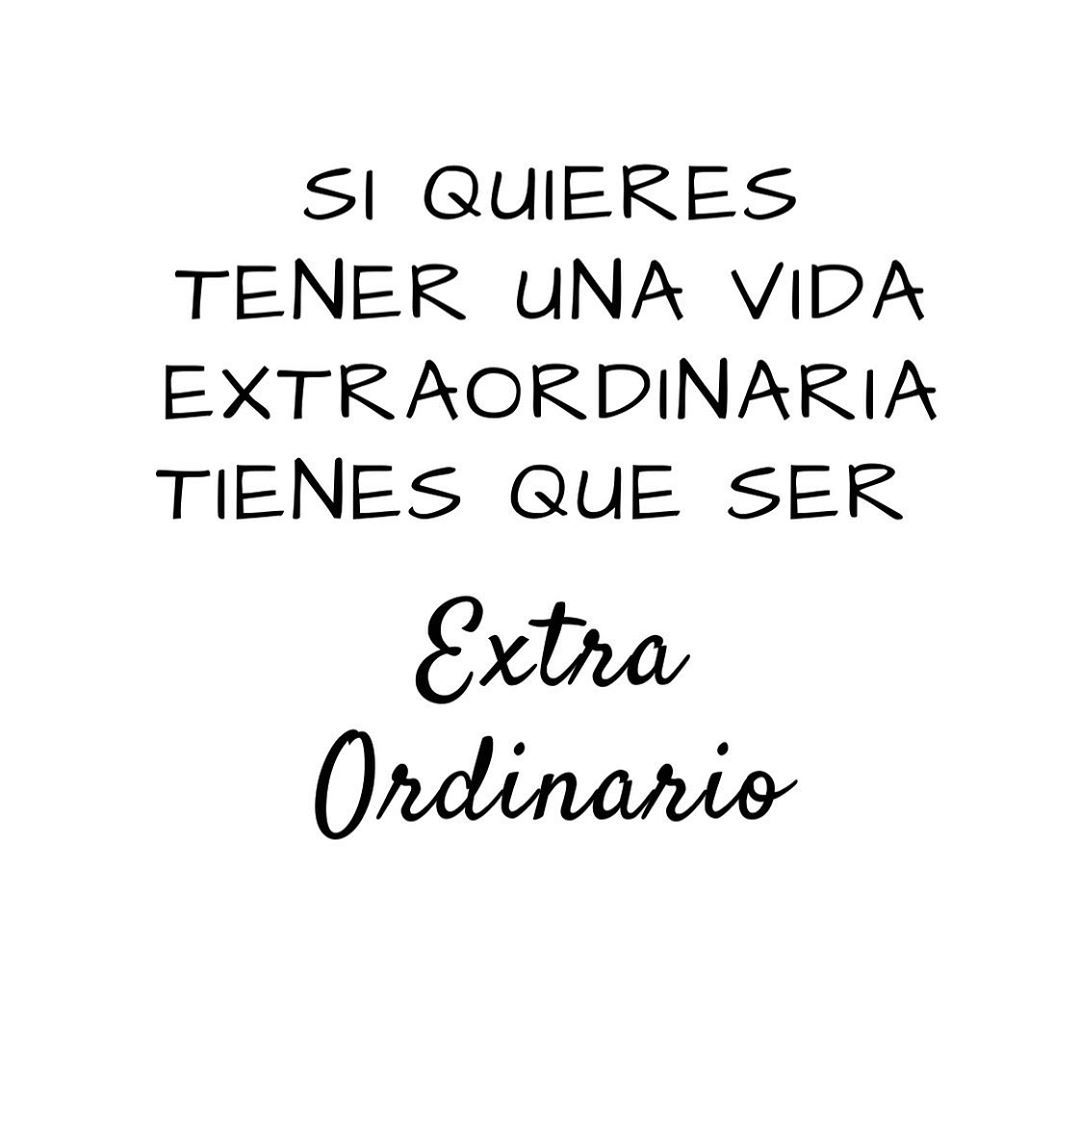 Extra ordinario • . . . . . . . #gratitud #transformacion #crecimiento #mente #humanismo #paz #quote #hacer #interior #gratitude #gratitude #amor #love #dar #give #coaching #monday #self #awarness #yourself #better #grow